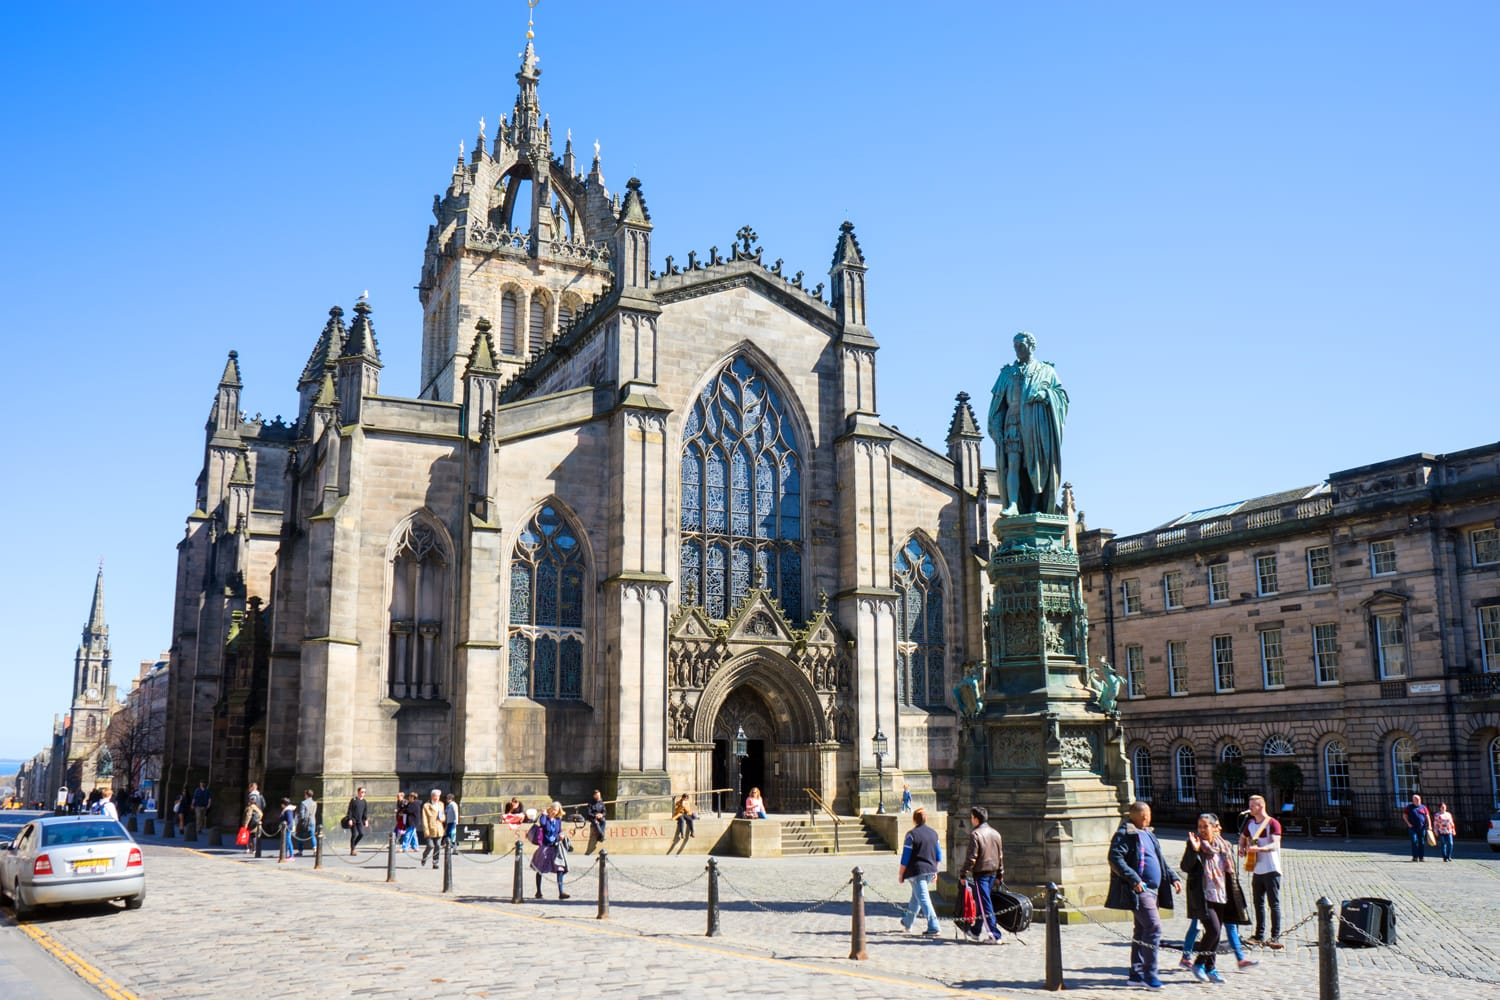 The High Kirk of Edinburgh, also known as the St Giles' Cathedral, is the principal place of worship of the Church of Scotland in Edinburgh.